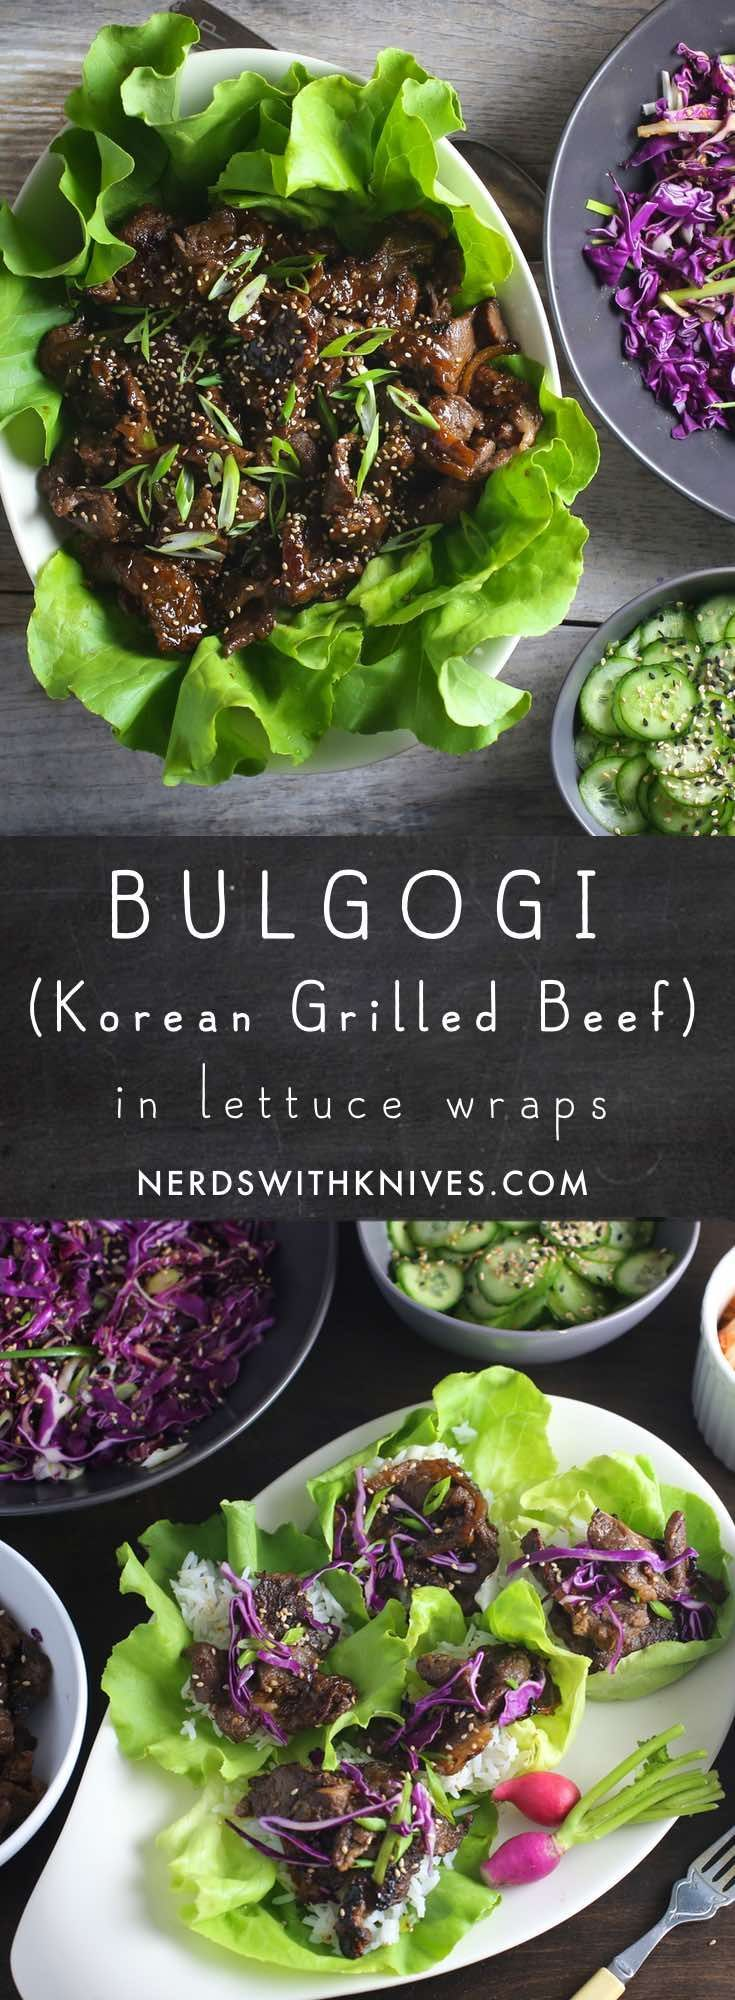 Bulgogi (Korean Grilled Beef) Lettuce Wraps